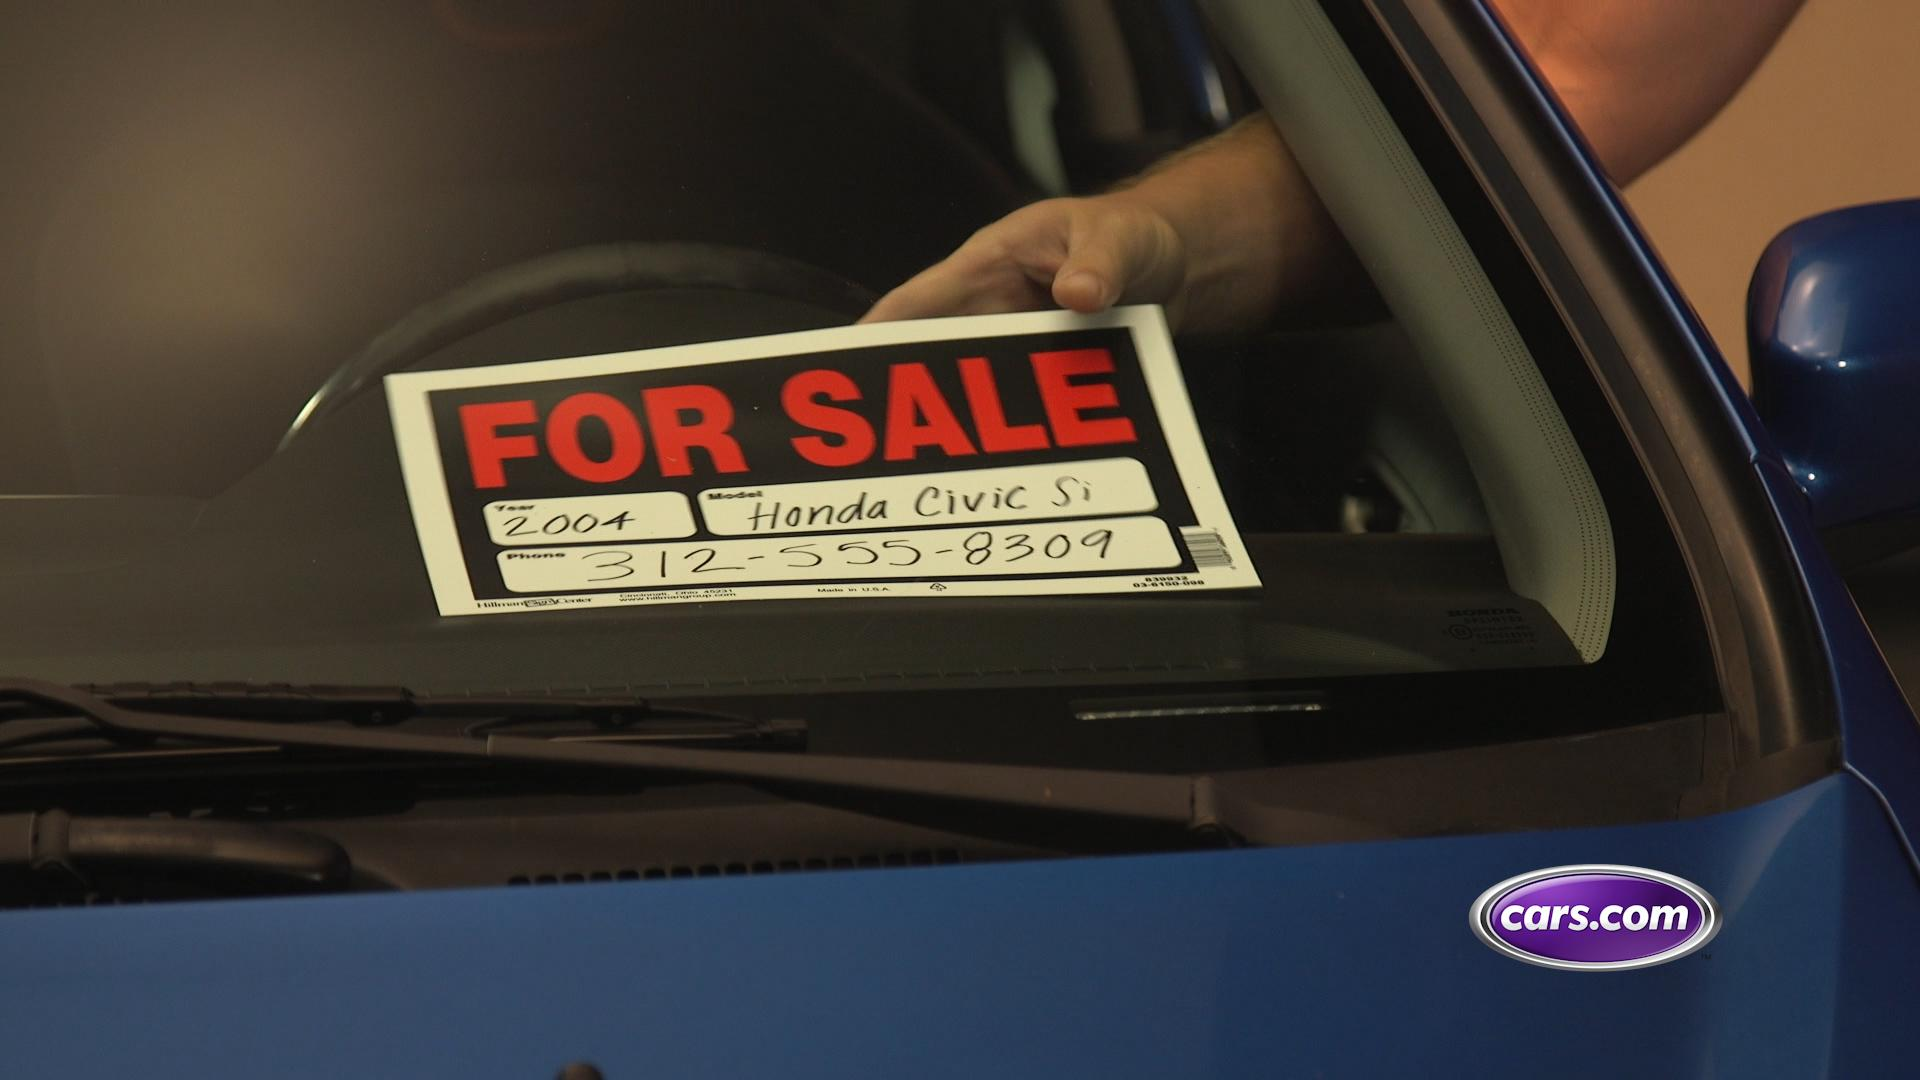 Video: How to Prep Your Car to Sell It for the Best Price